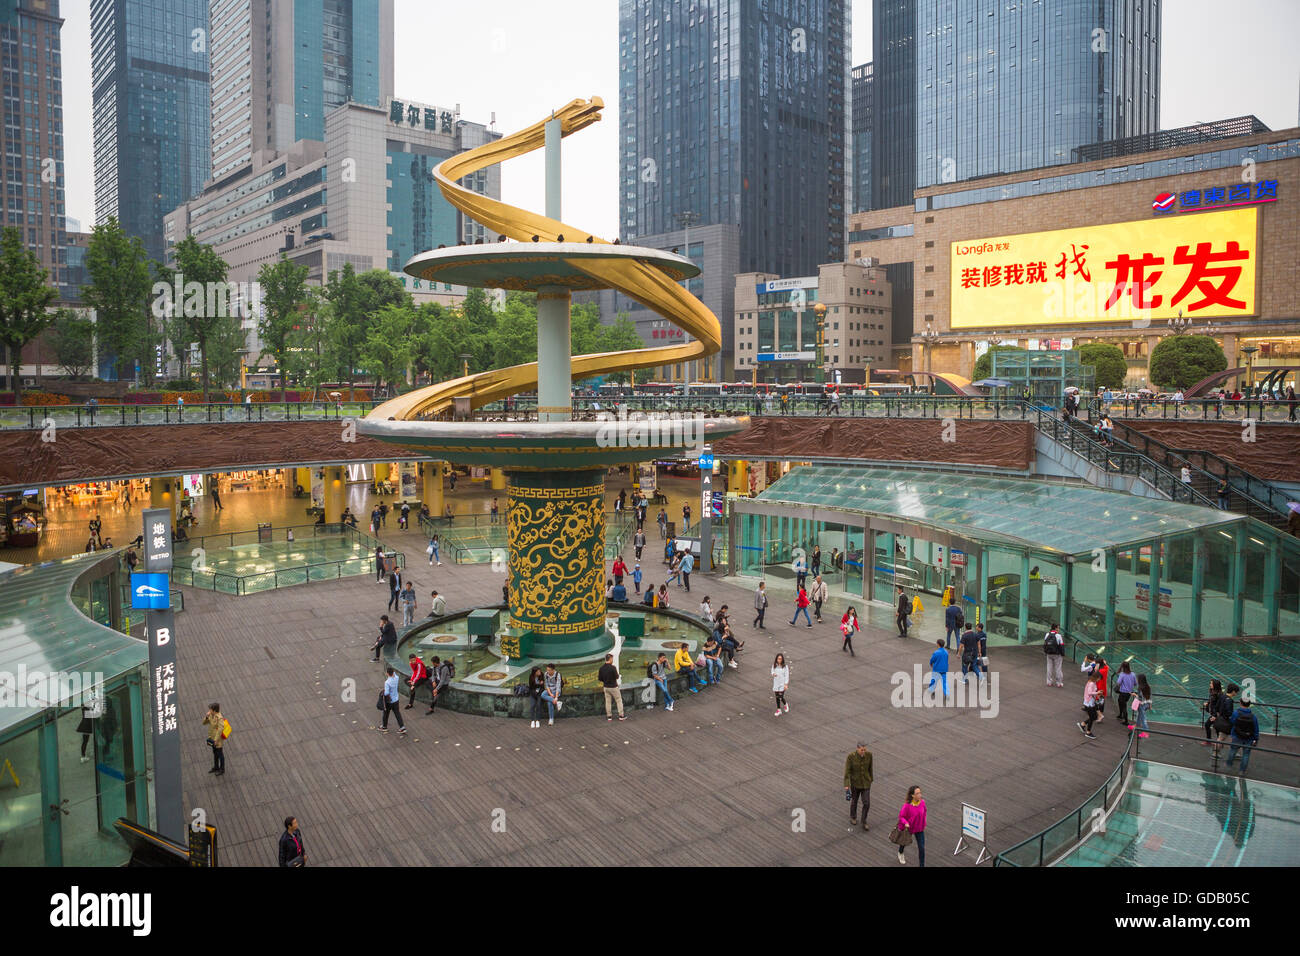 China,Sichuan Province,Chengdu City,Tianfu Square - Stock Image